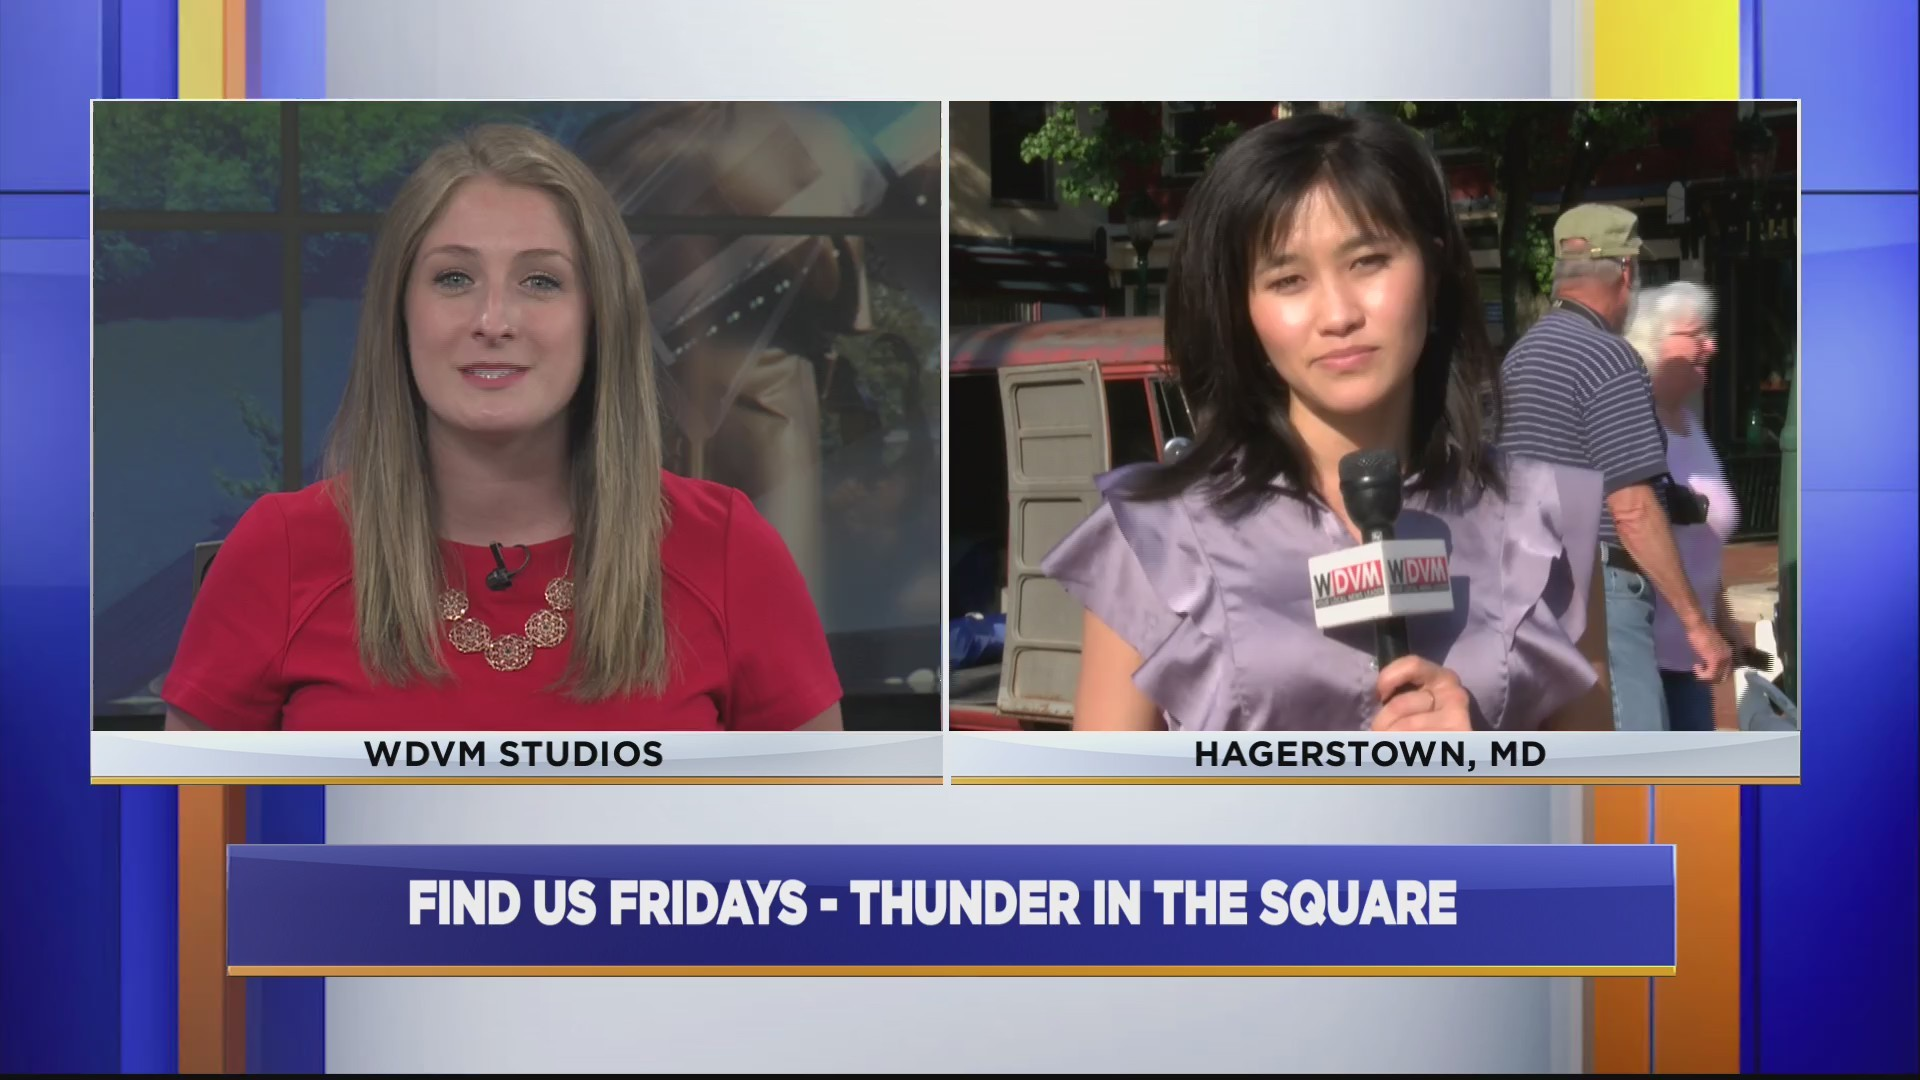 _FindUsFridays__Thunder_in_the_Square_0_20180629221501